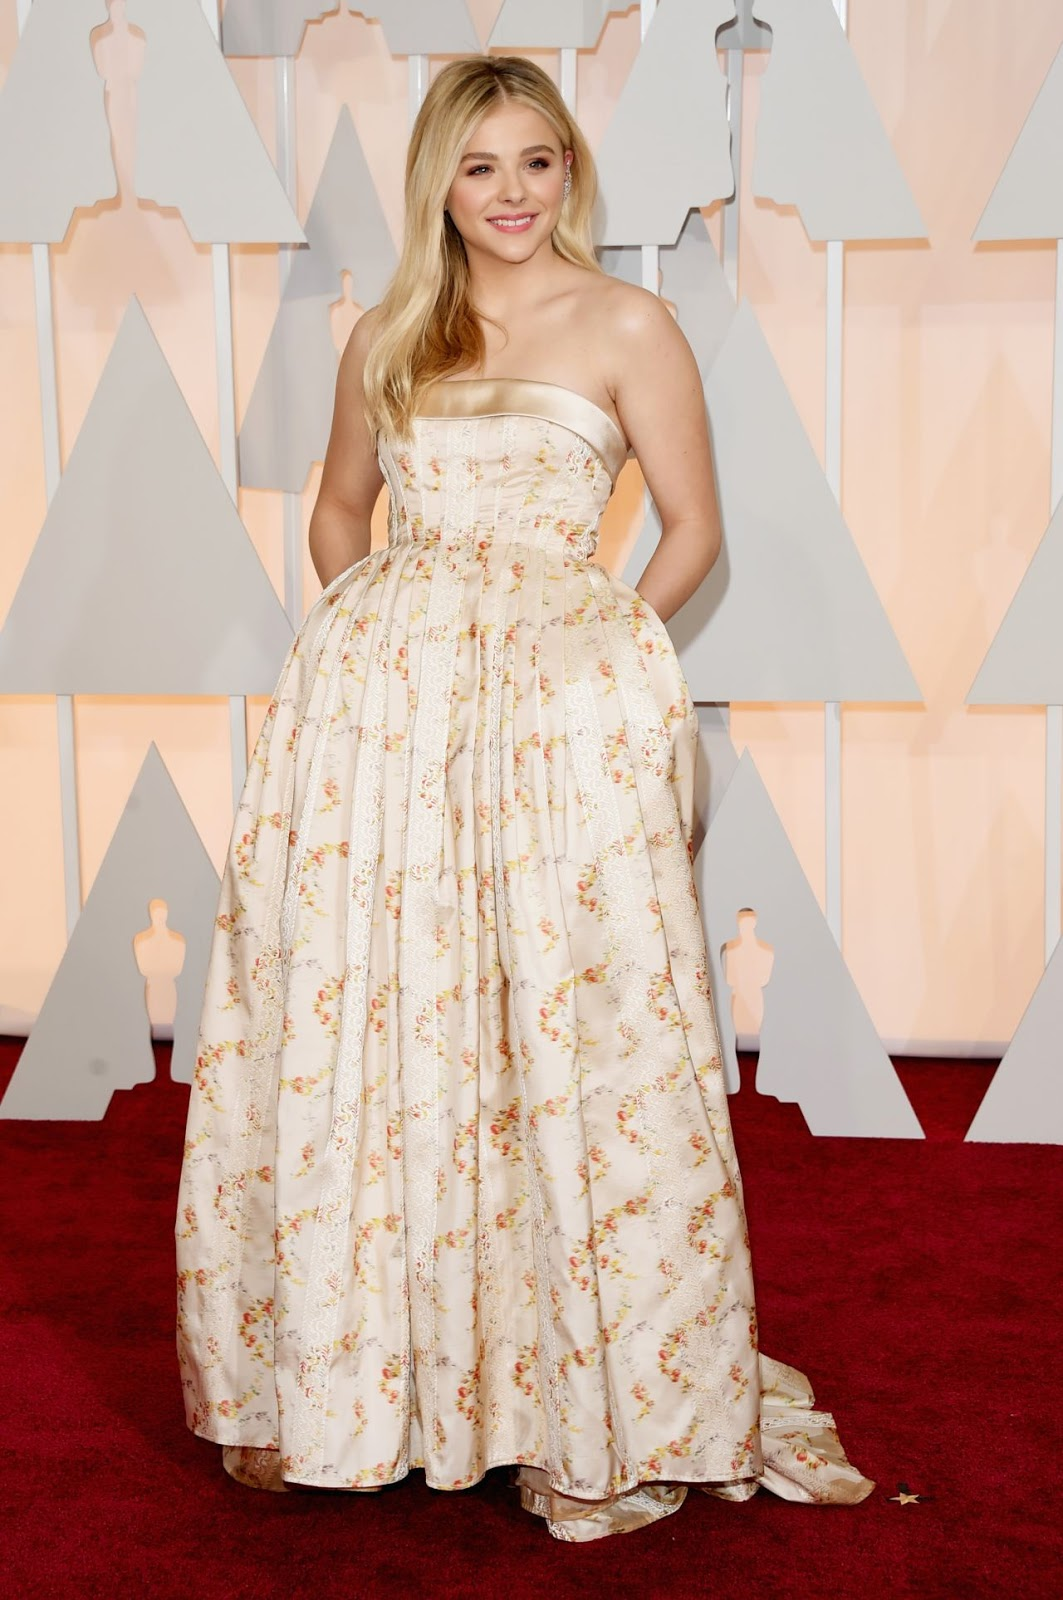 Chloe Moretz wears a strapless Miu Miu gown to the 2015 Oscars in Hollywood